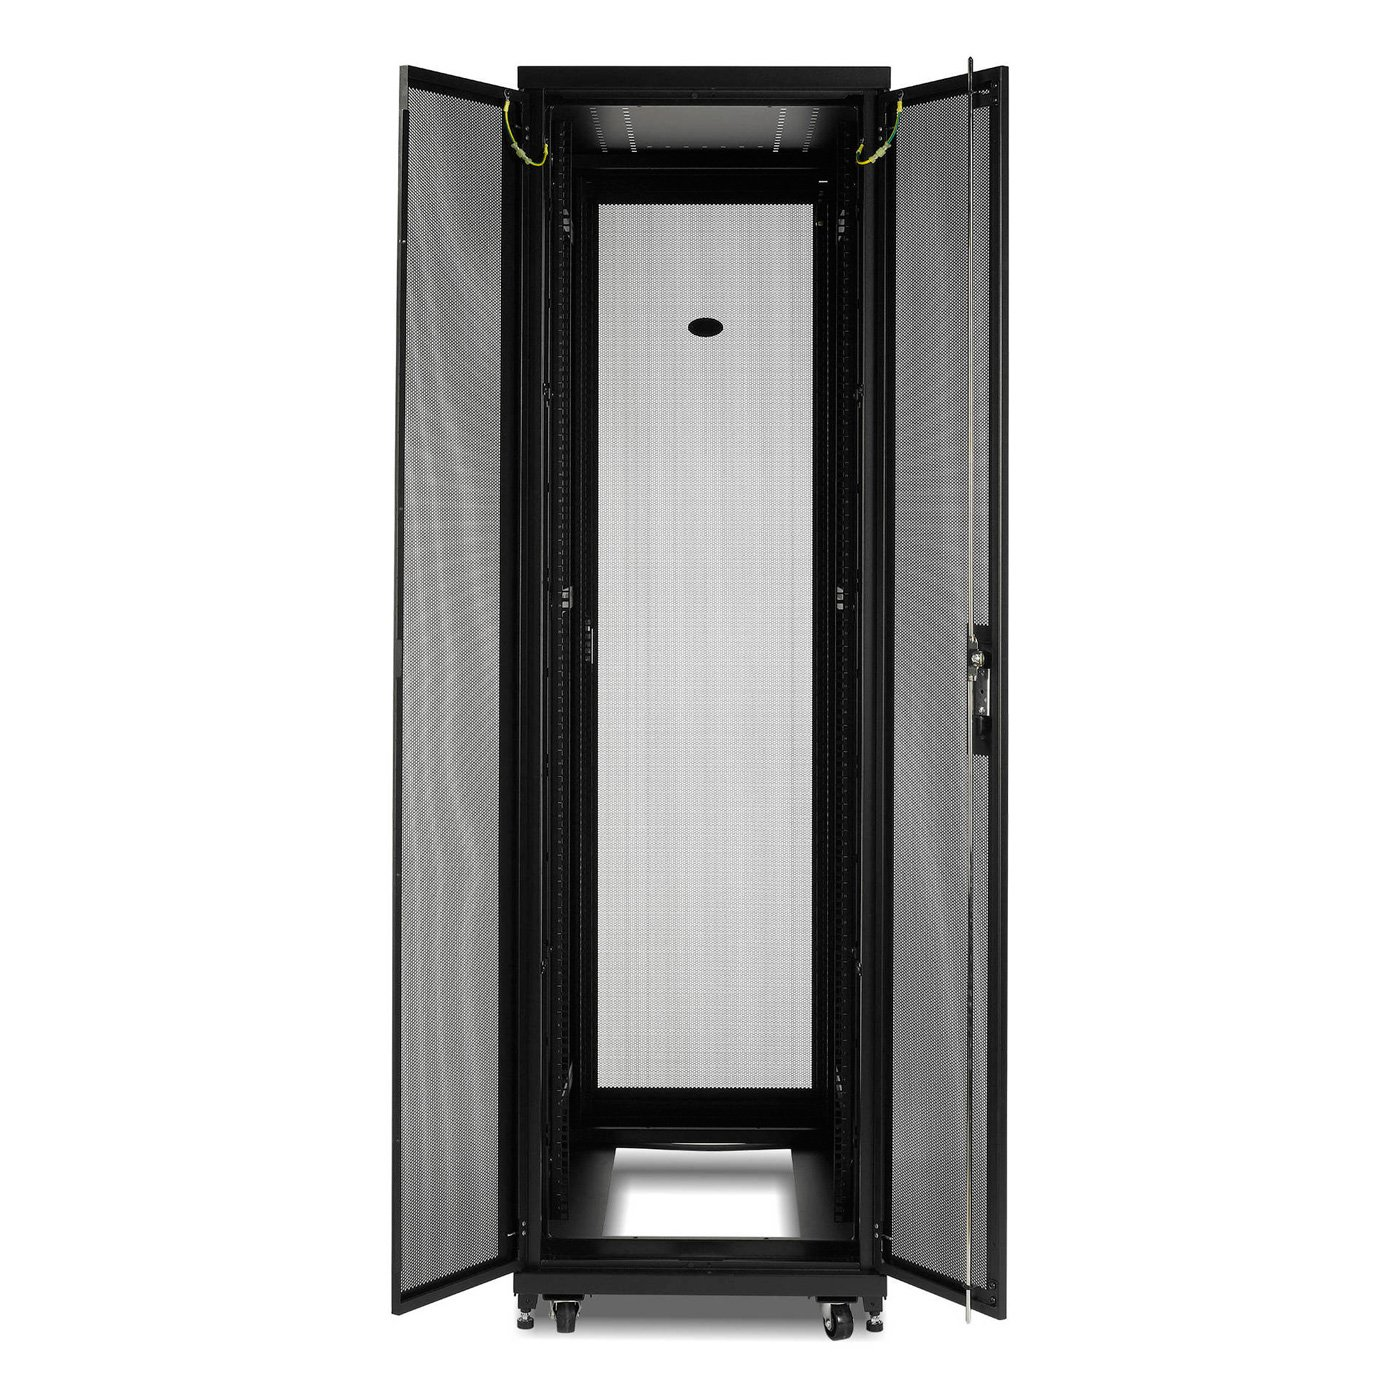 APC NetShelter SV 42U 800mm Wide x 1200mm Deep Enclosure with Sides Black AR2580 by APC CABLES